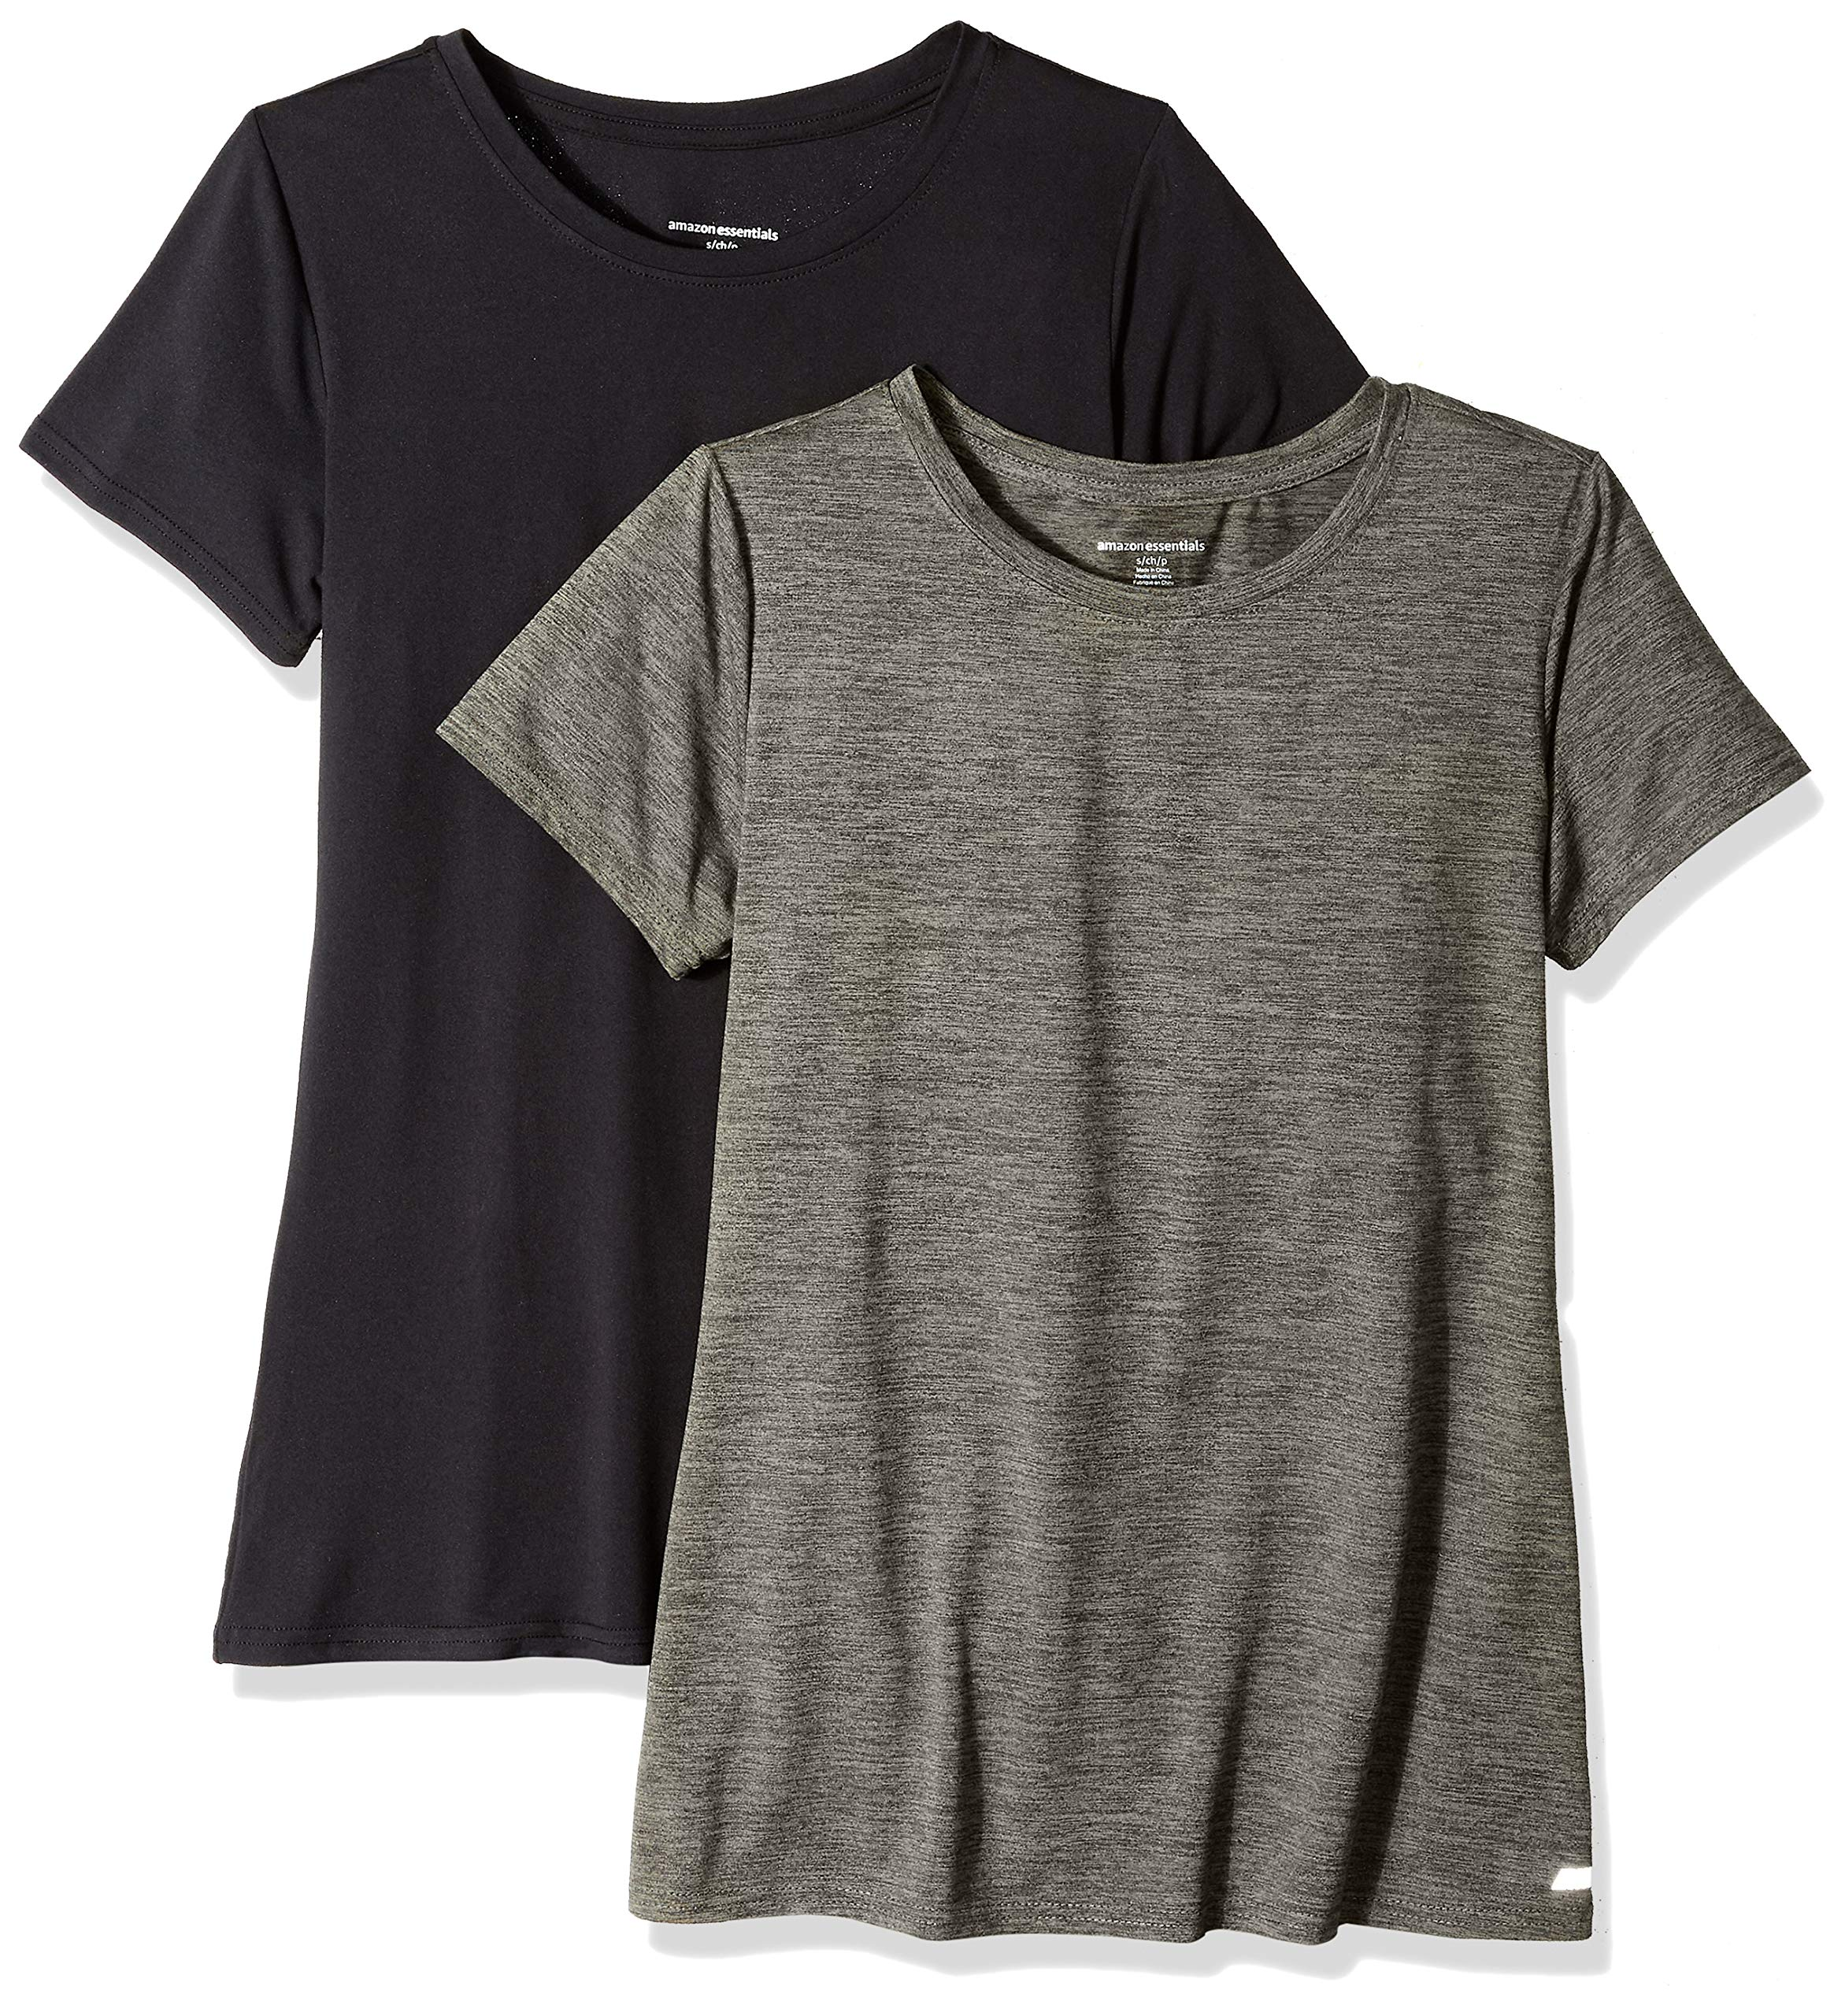 Amazon Essentials Women's 2-Pack Tech Stretch Short-Sleeve Crewneck T-Shirt, Olive Space dye/Black, X-Small by Amazon Essentials (Image #1)